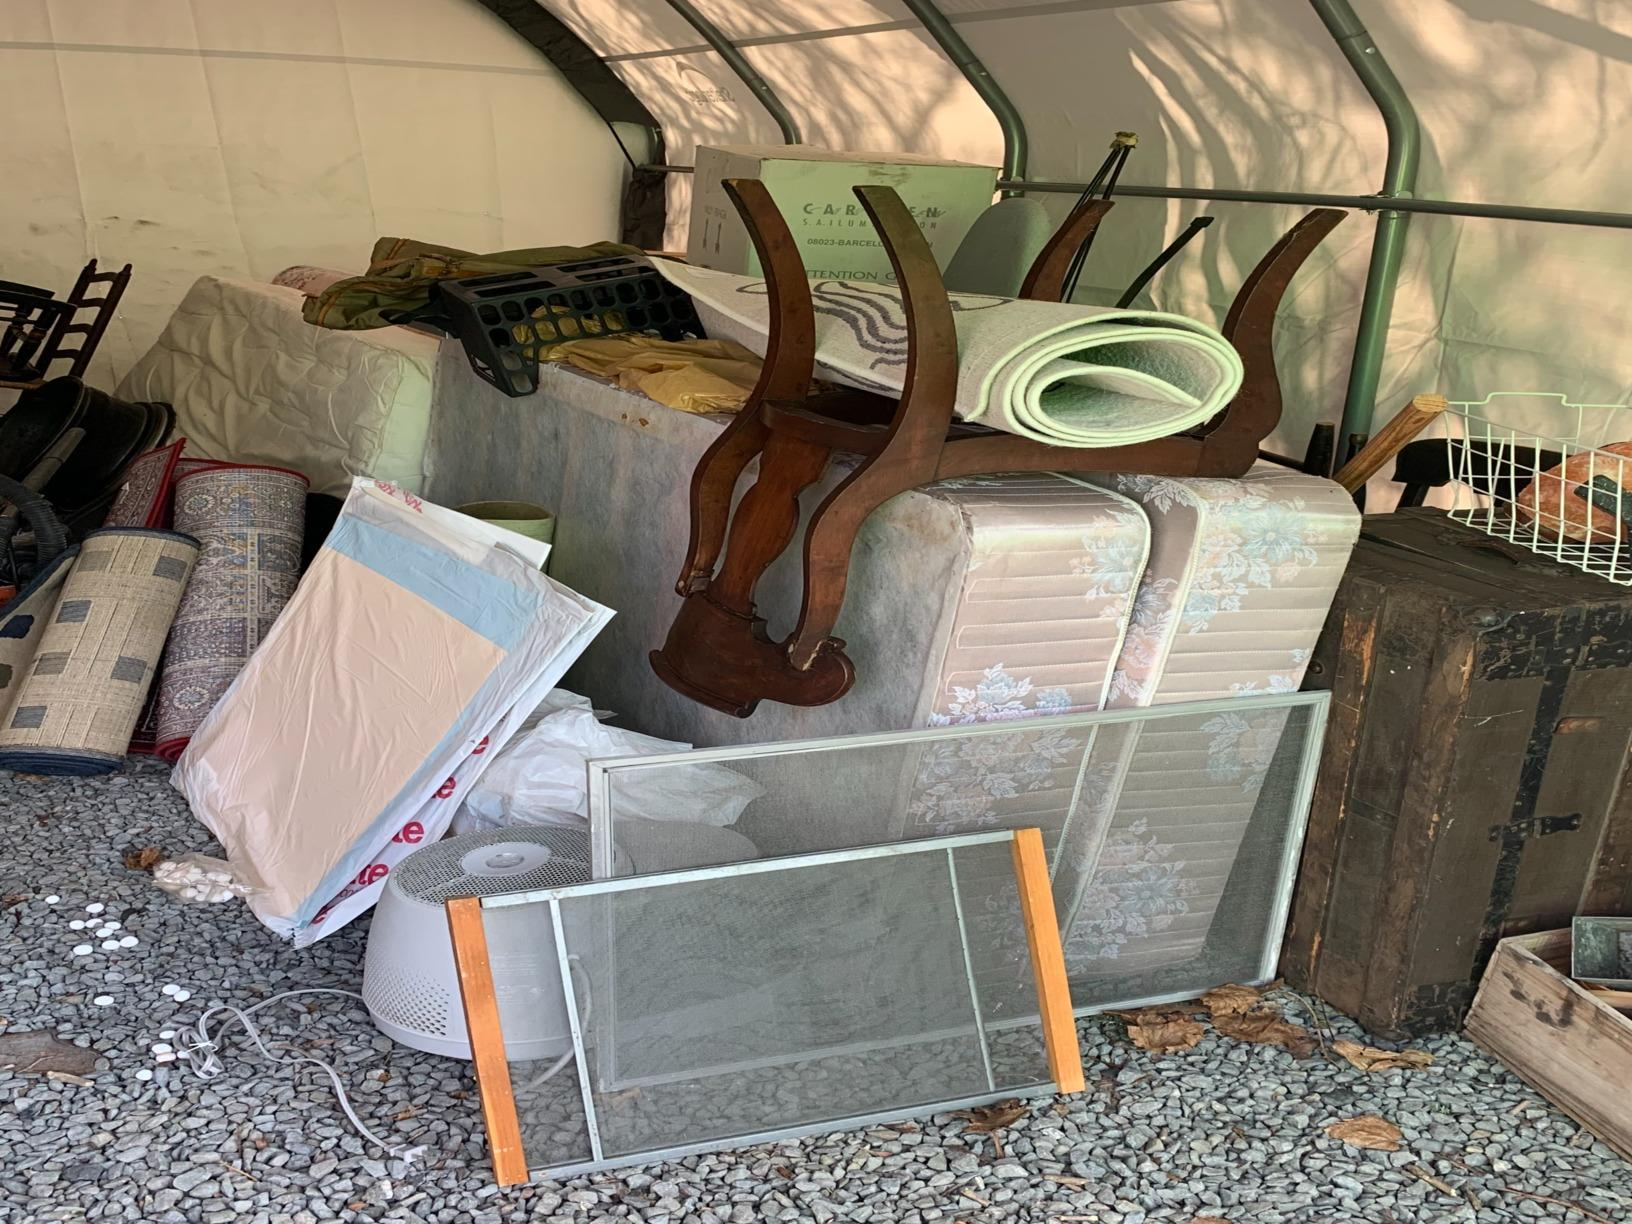 Junk Removal in Westwood, MA - Before Photo